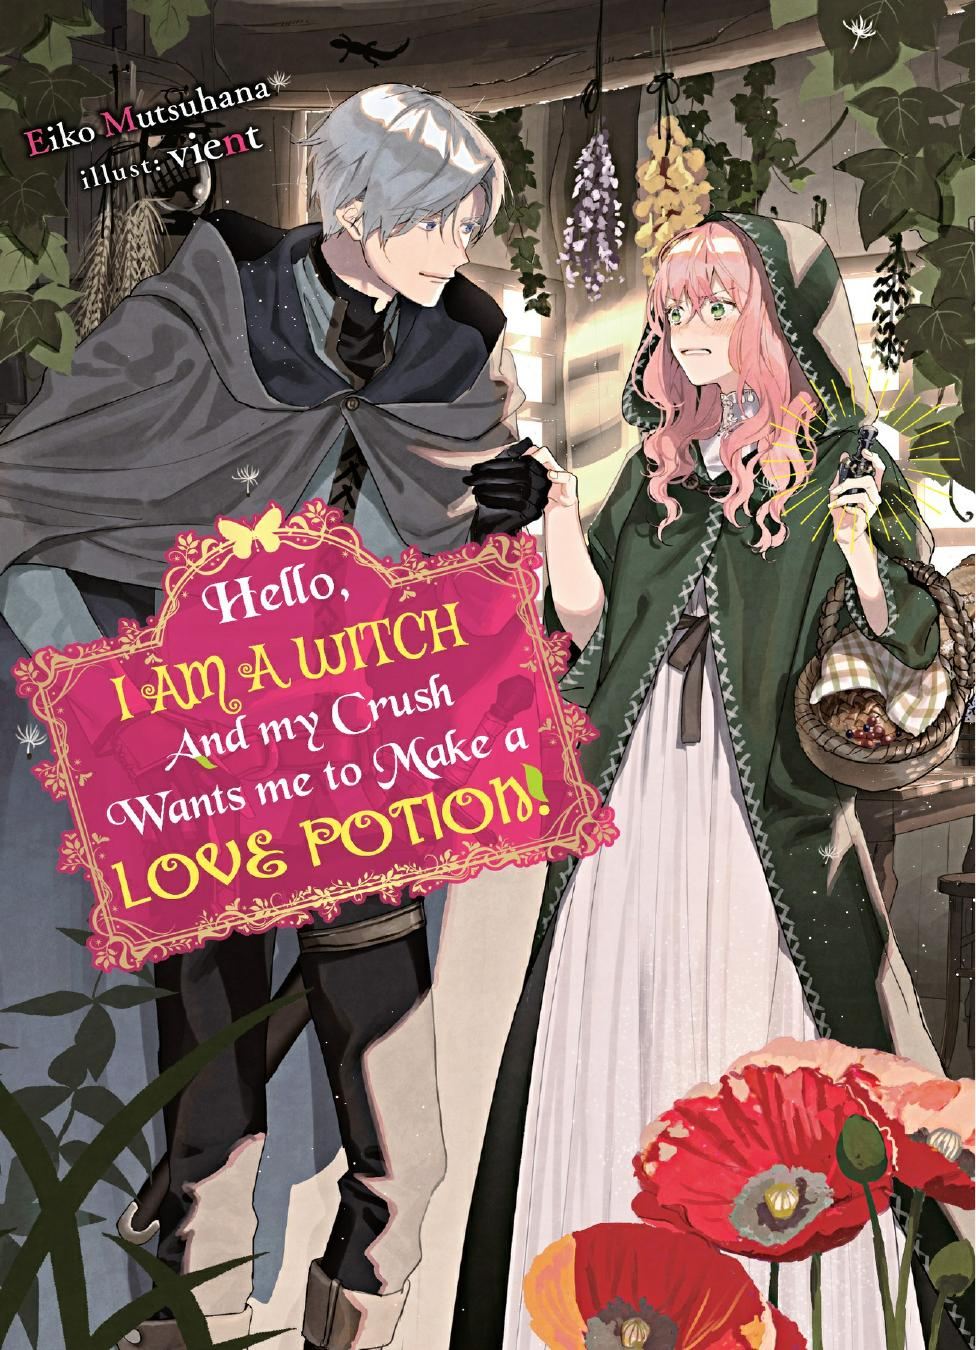 Hello, I am a Witch and my Crush Wants me to Make a Love Potion! cover.jpg